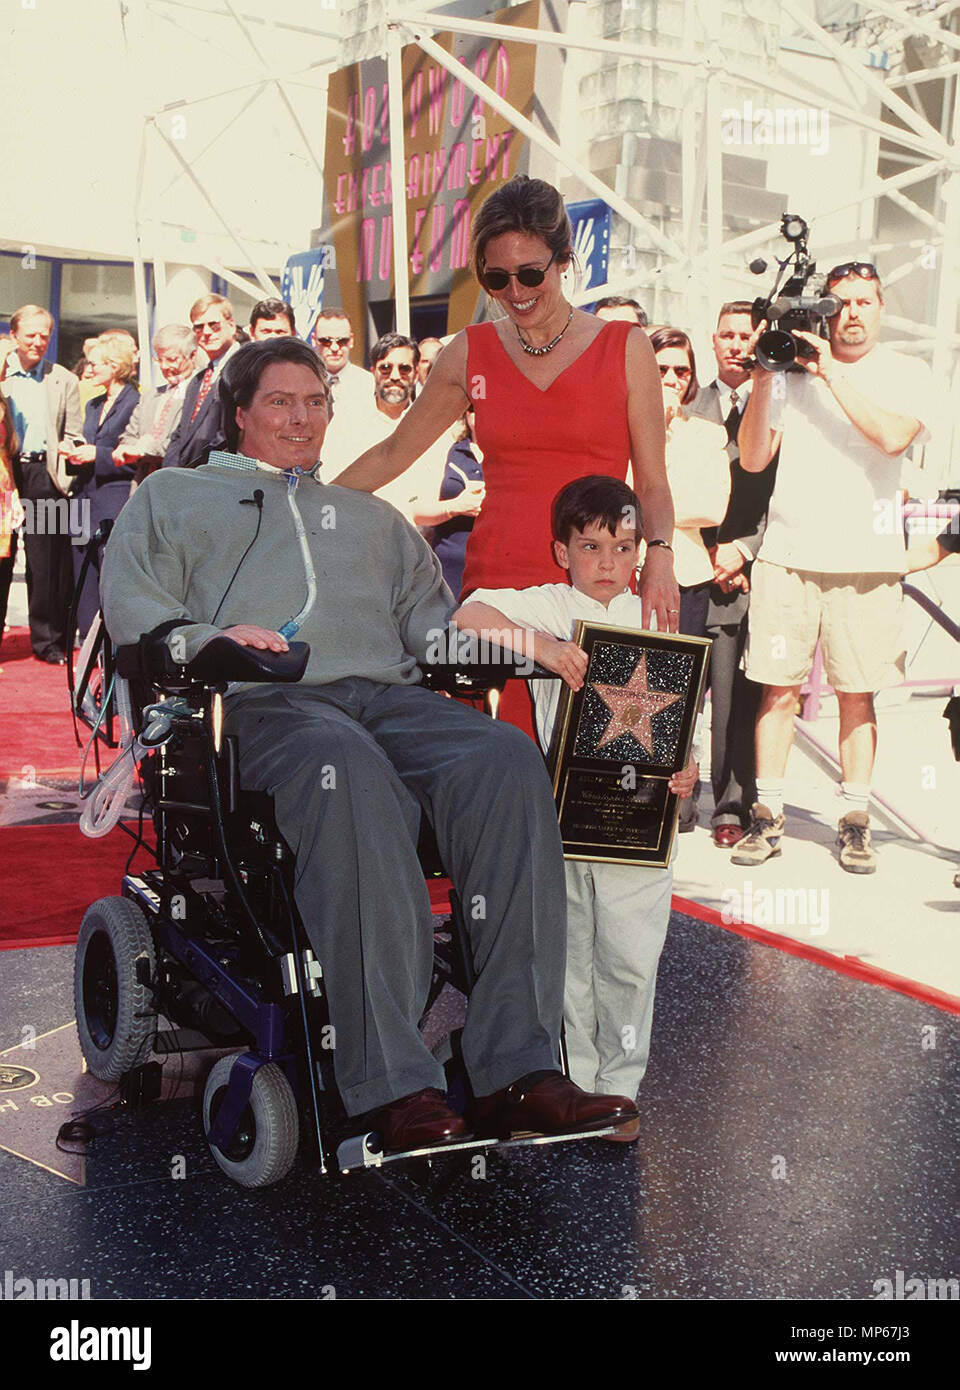 Christopher Reeve Stock Photos & Christopher Reeve Stock Images - Alamy